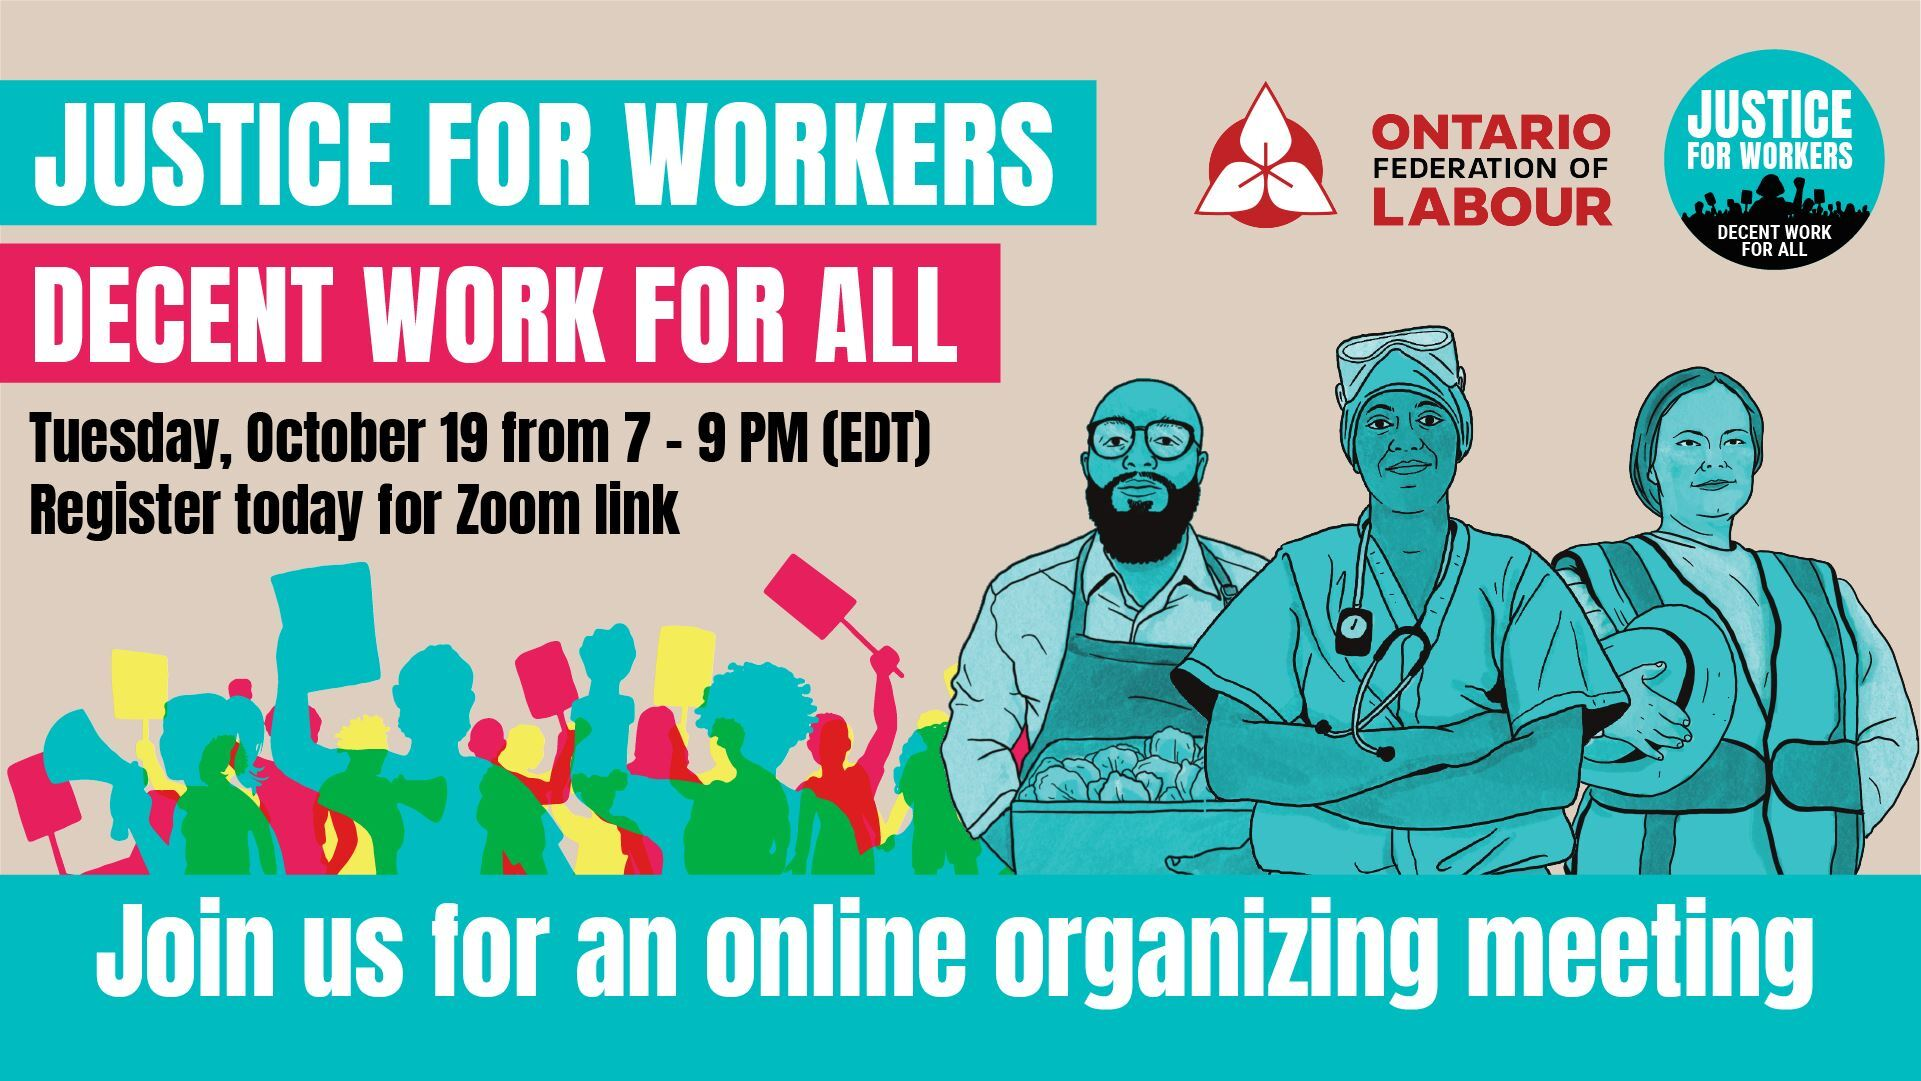 Text: Justice For Workers. Decent Work for All. Tuesday, October 19th from 7-9pm EDT. Register Today for Zoom Link. Graphic of group of workers and Ontario Federal of Labour and Justice for Workers logo.